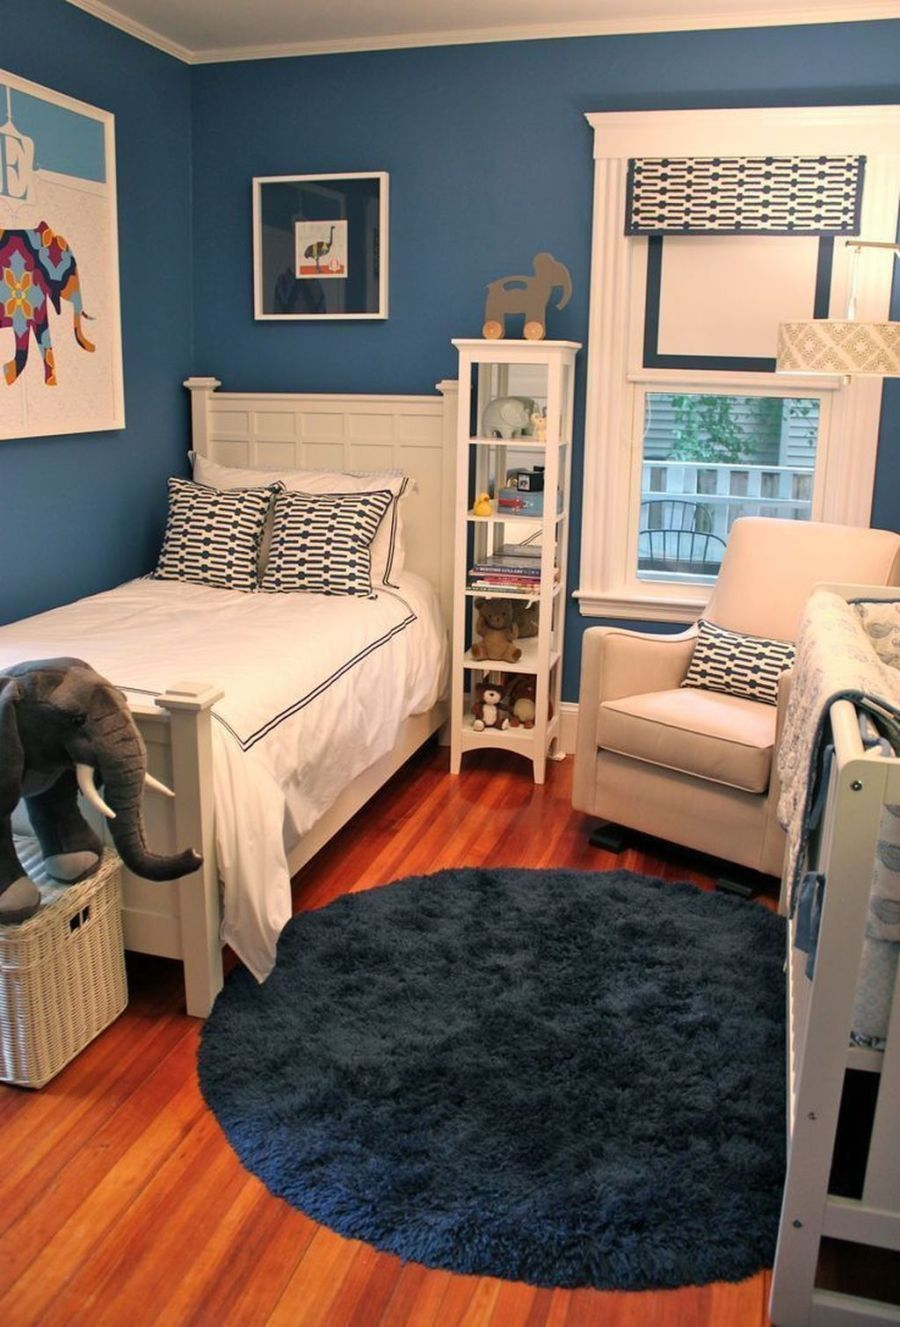 Awesome Boys Bedroom Ideas Toddler Small 36 Amazing Small Bedroom Decor Ideas To Make Feel Bi In 2020 Small Bedroom Bedroom Layouts Bedroom Furniture Placement